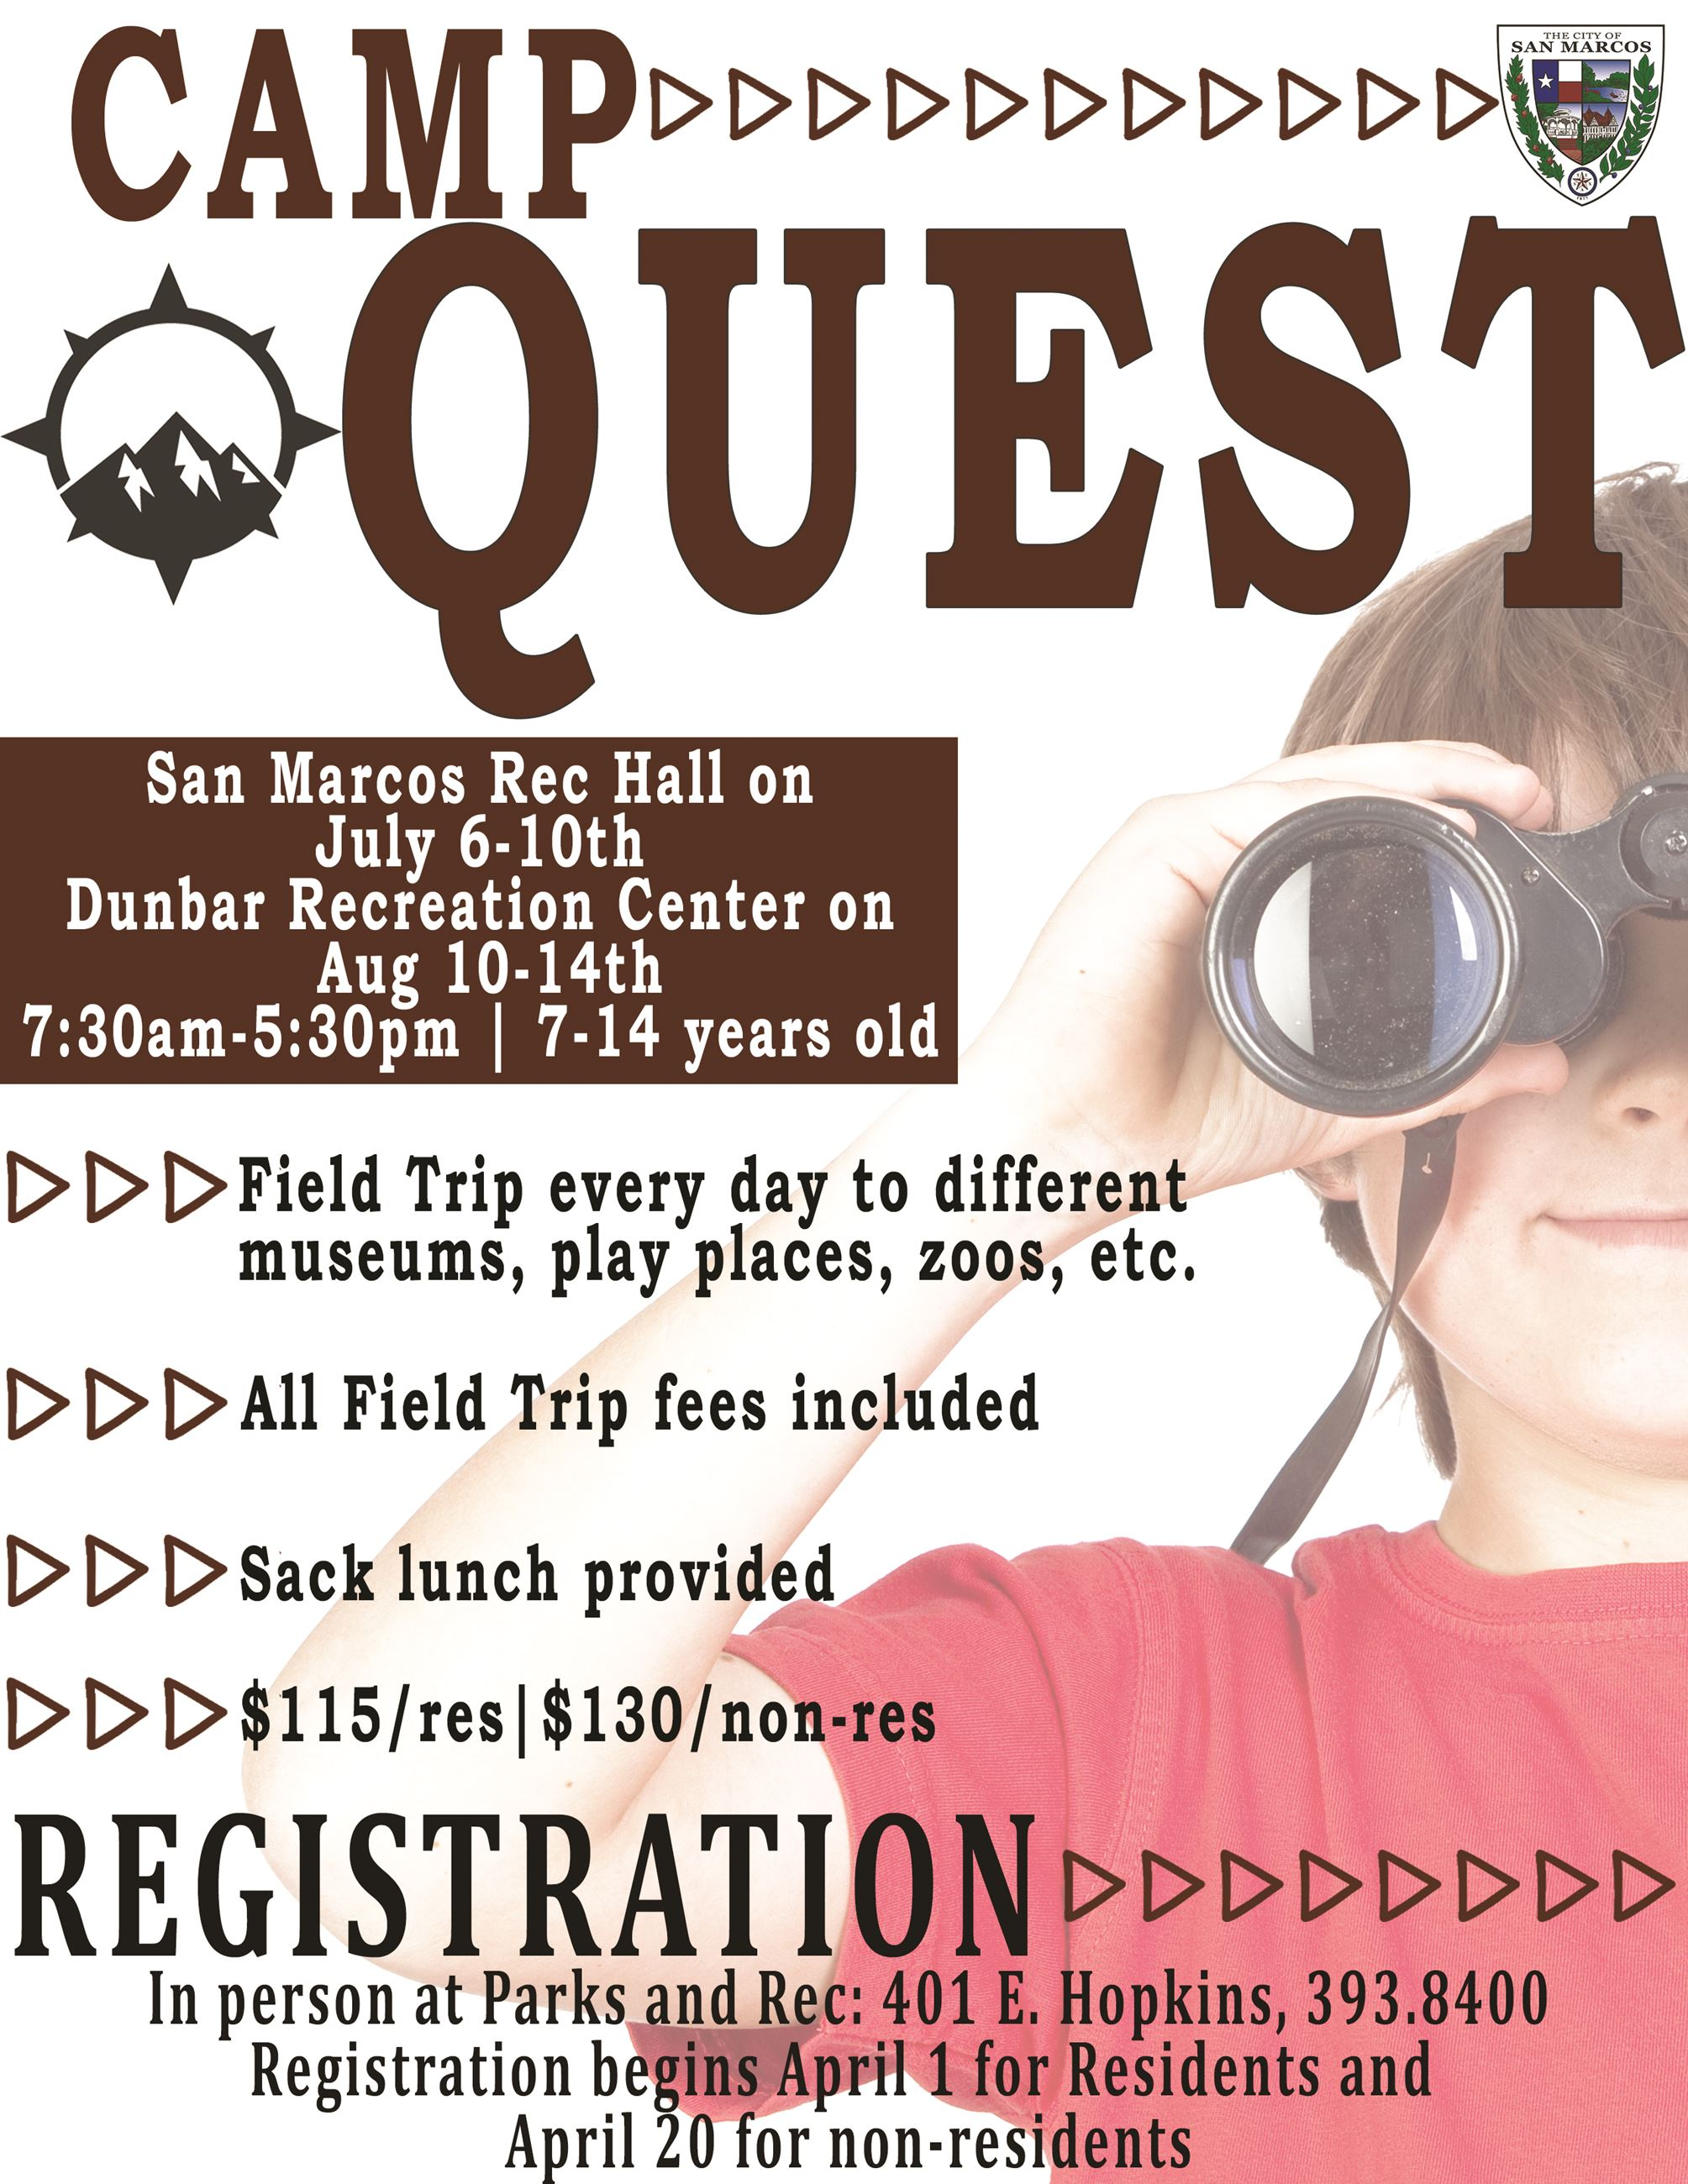 2020 Camp Quest Flyer